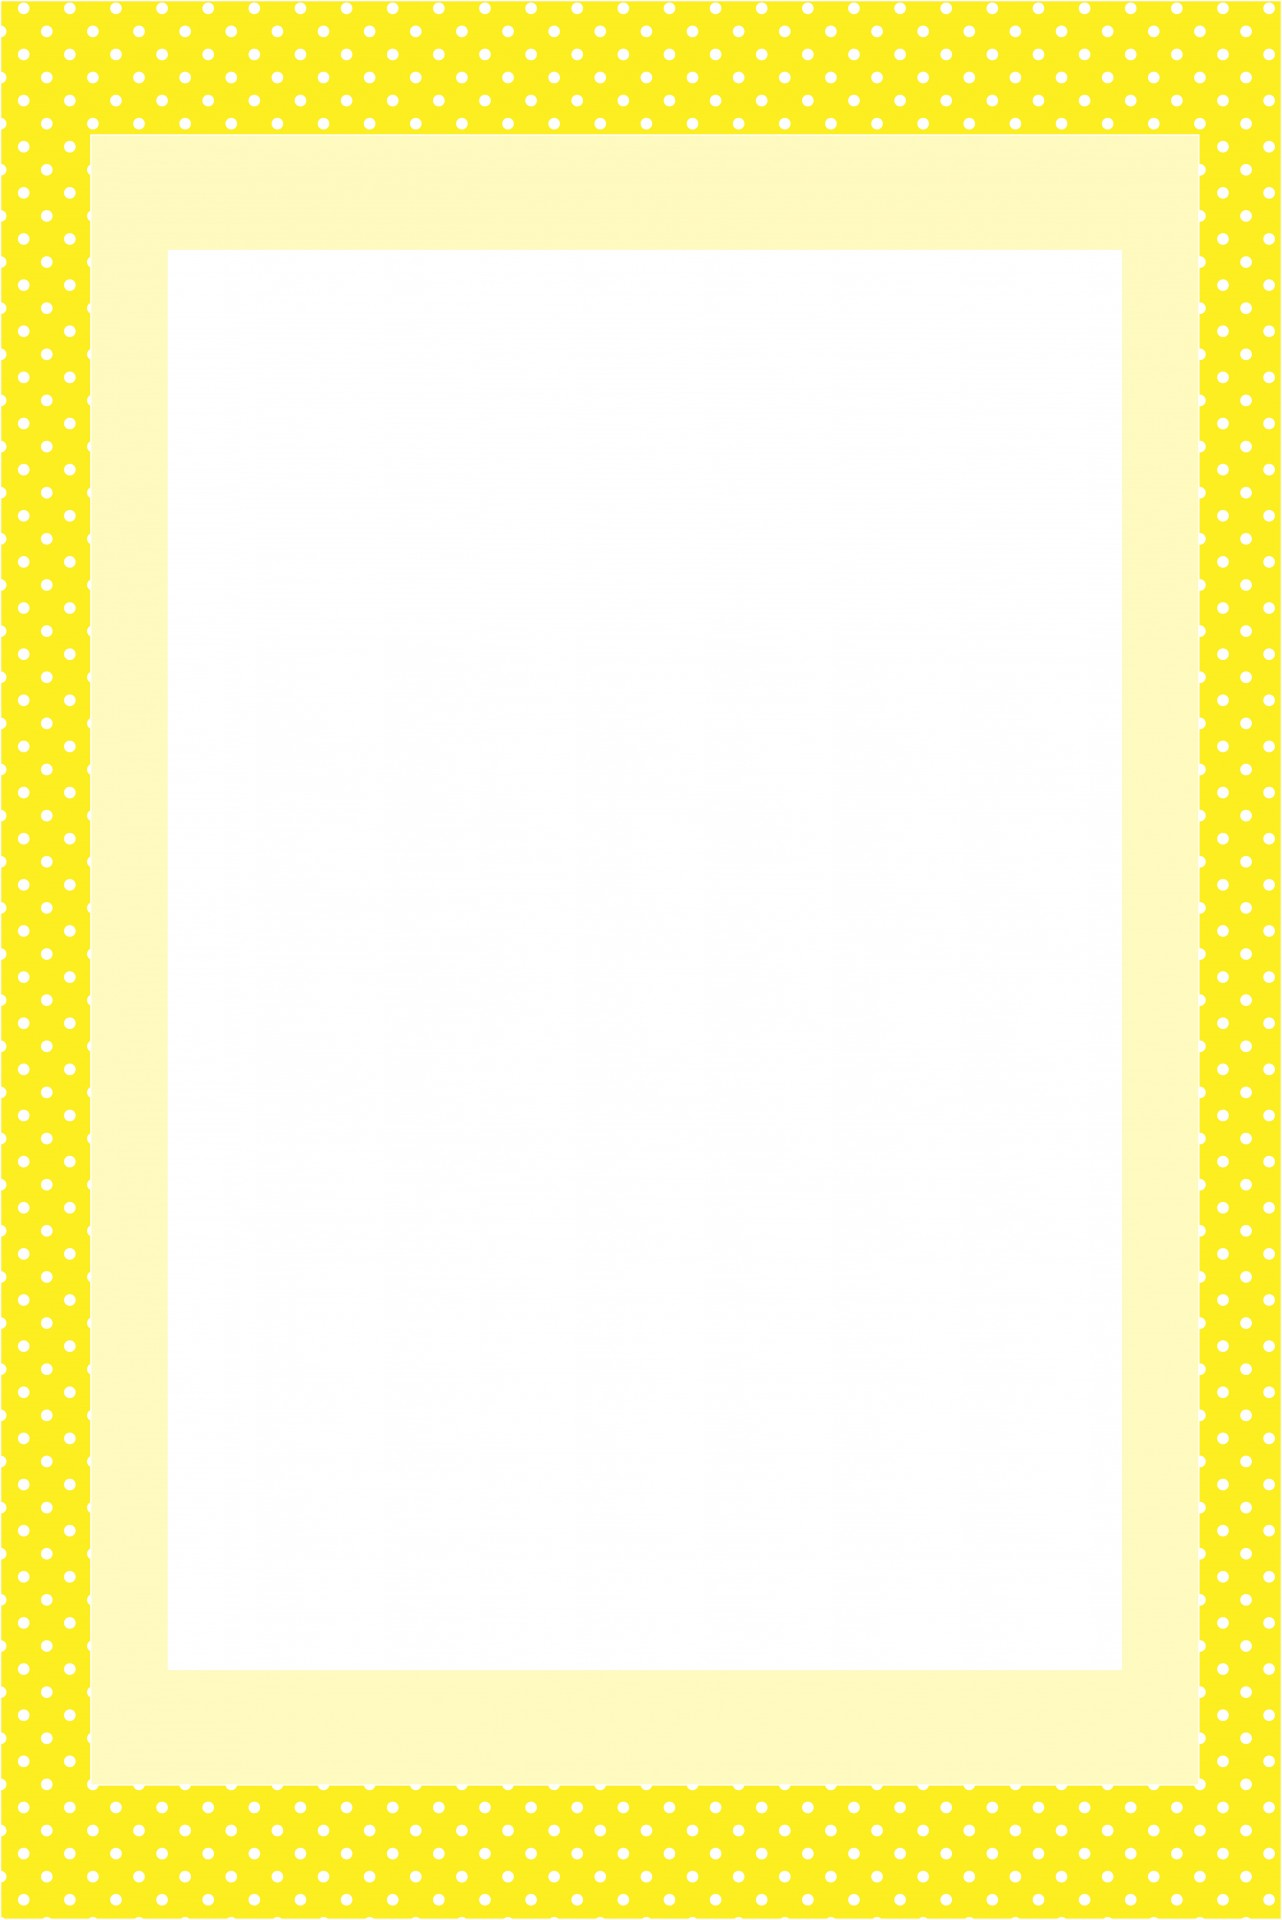 Yellow Invitation Card Frame Free Stock Photo Public Domain Pictures